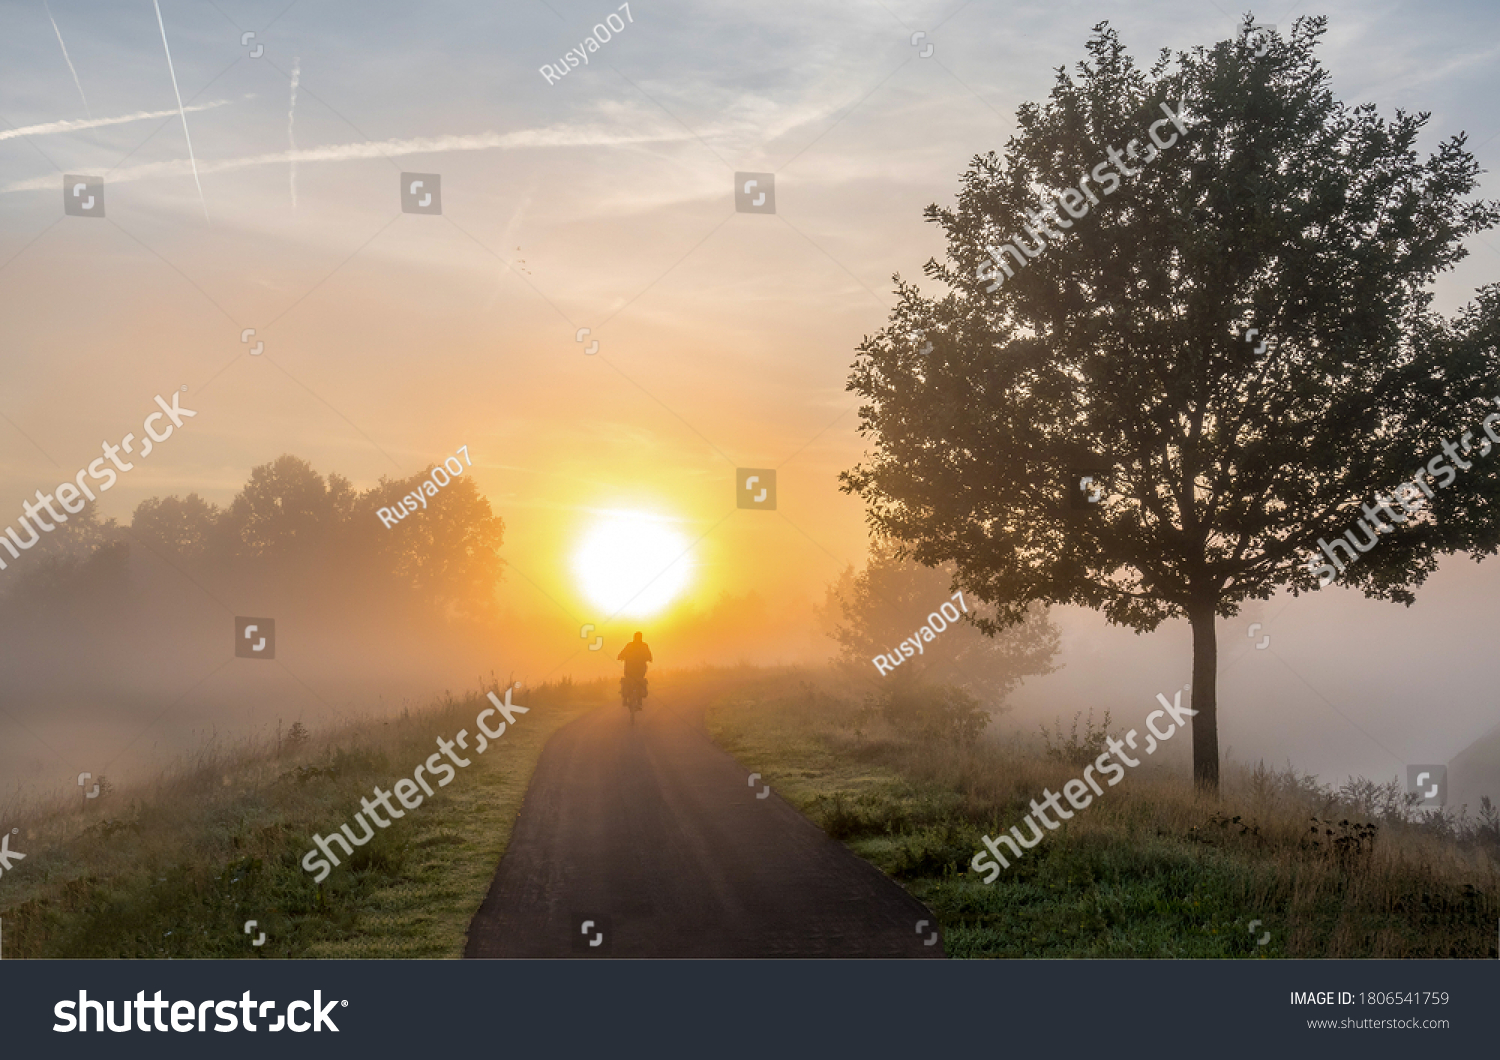 Sunrise fog silhouette of a cyclist. Ealy morning mist trip. Early morning sunrise travel. Sunrise in early morning #1806541759